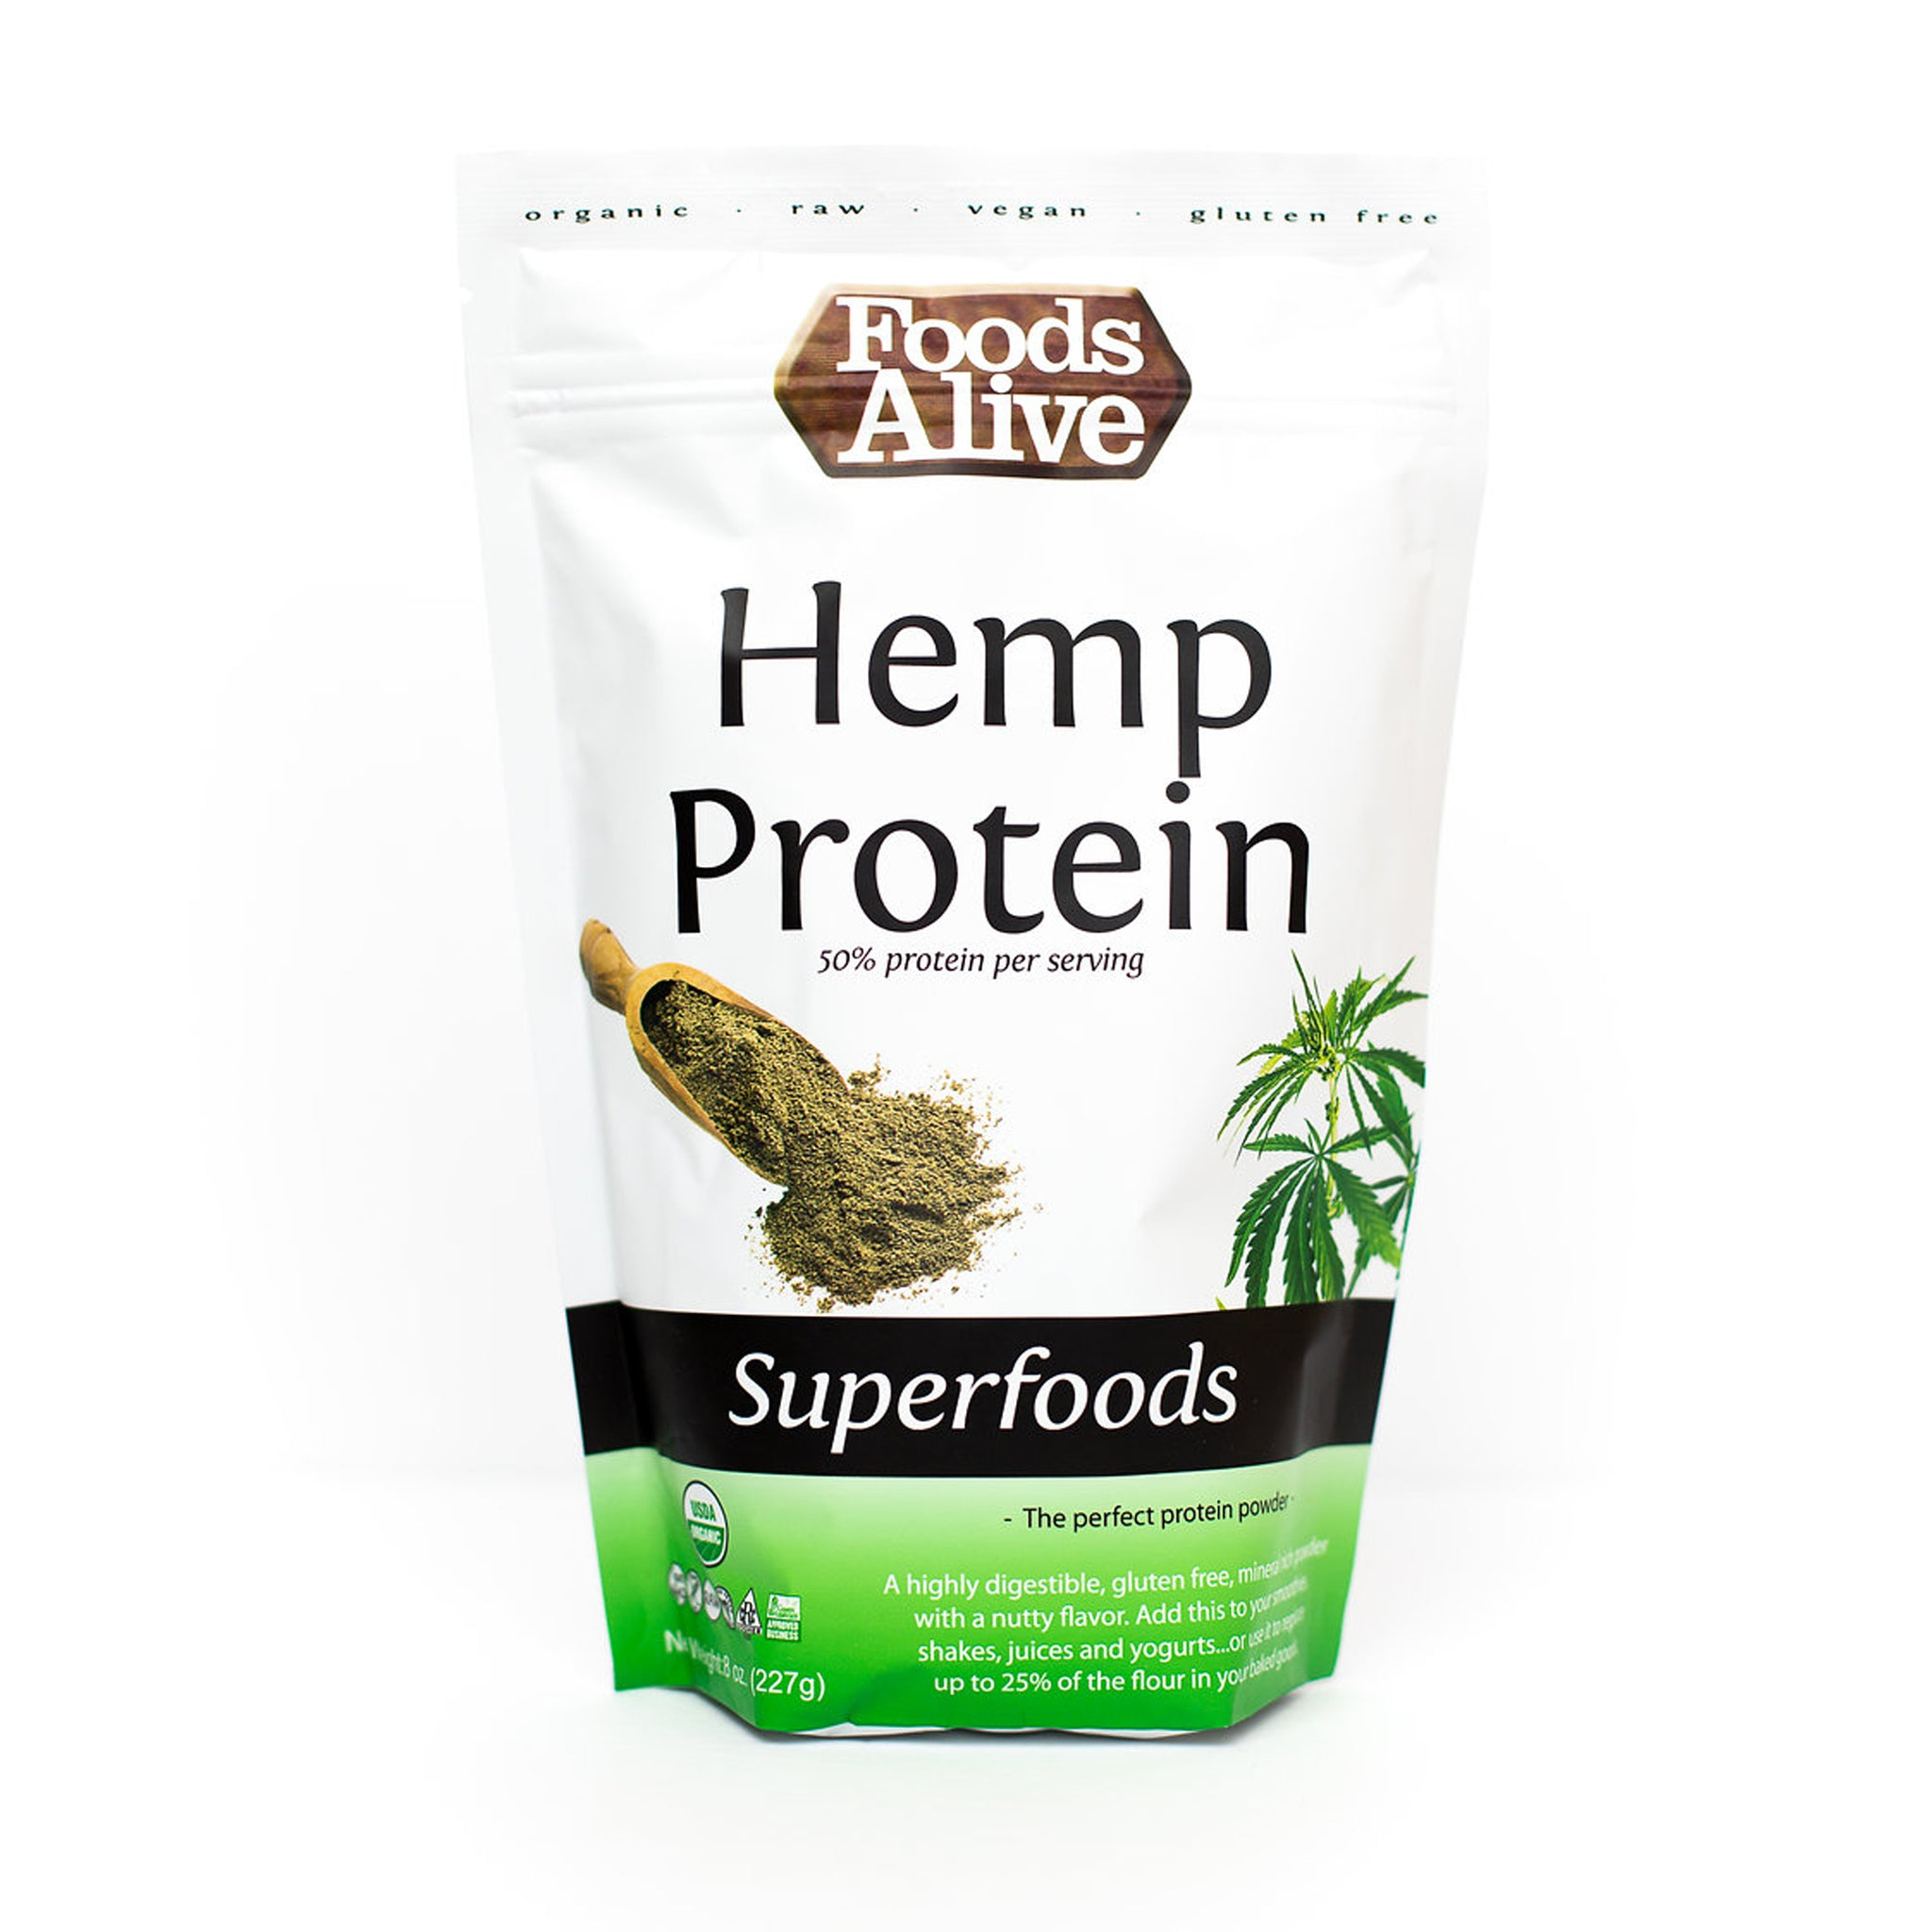 Foods Alive - Organic Hemp Protein Powder - 8 oz - Front